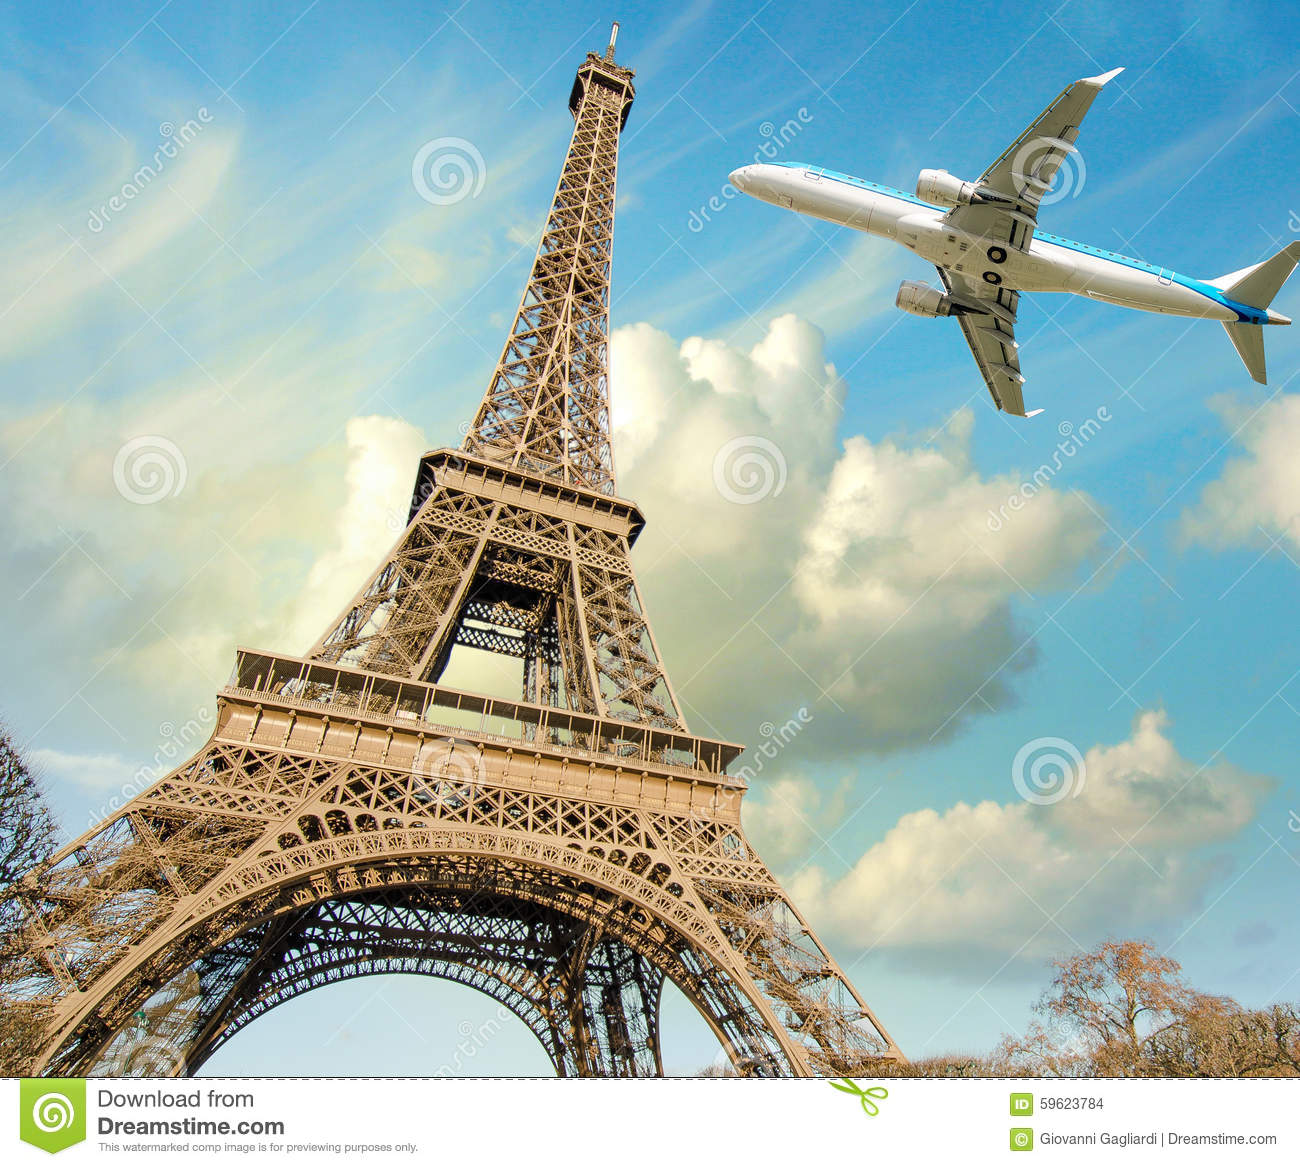 Luxury Airplane Over Eiffel Tower : Airplane overflying eiffel tower in paris stock photo